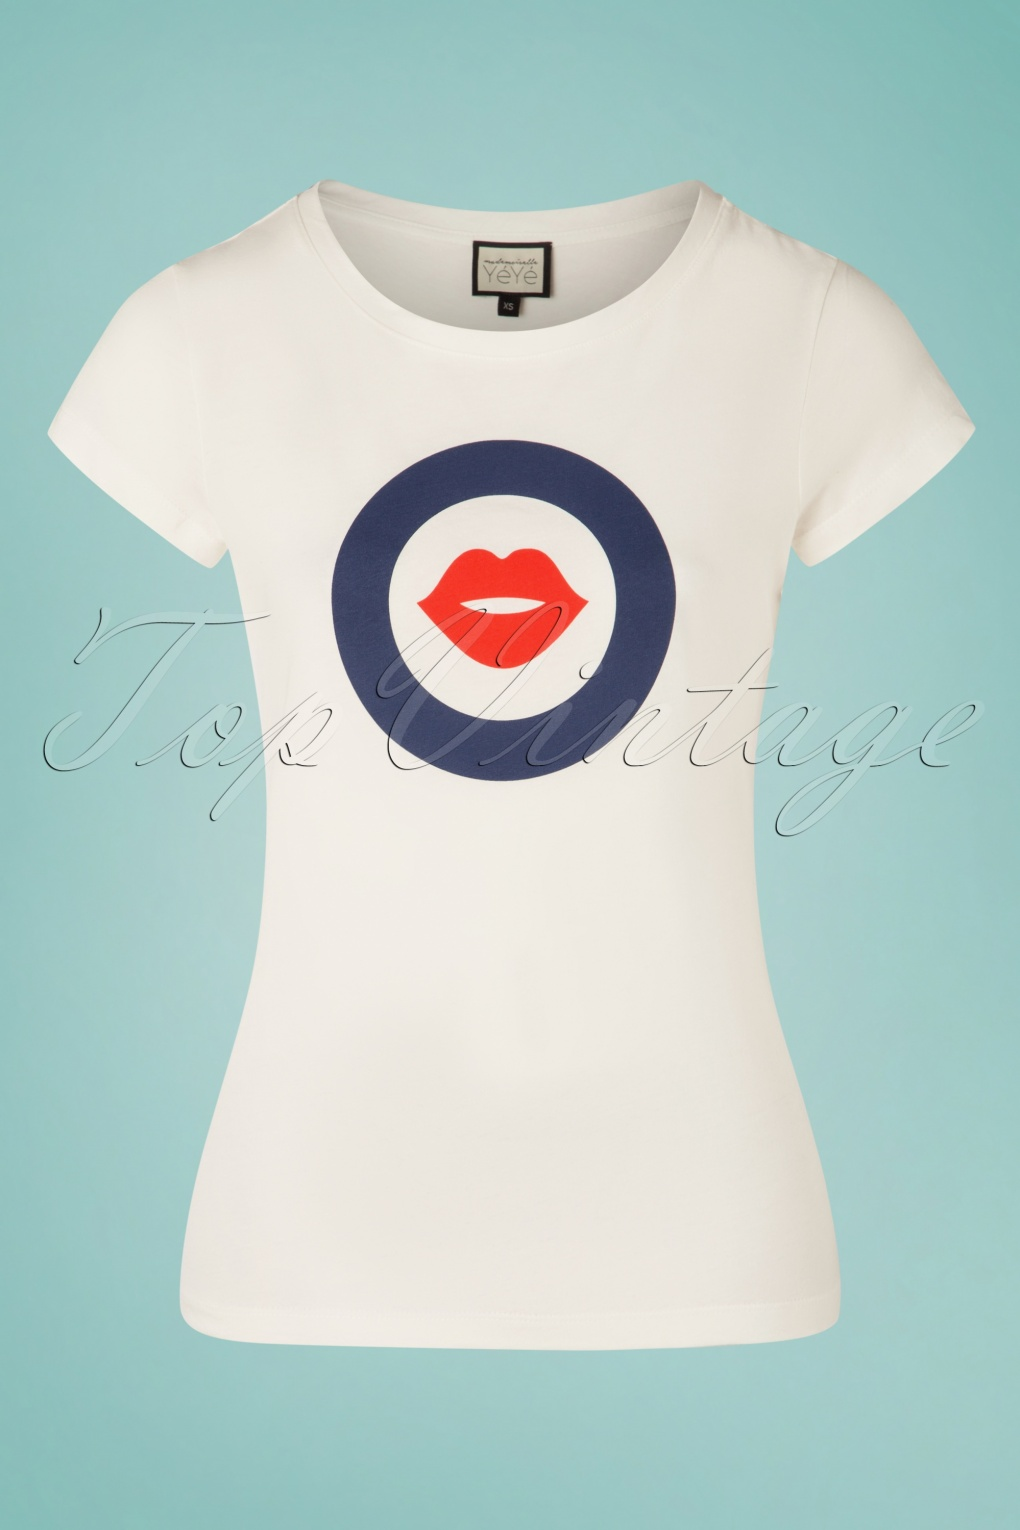 60s Shirts, T-shirt, Blouses, Hippie Shirts 60s With Kisses T-Shirt in White £29.58 AT vintagedancer.com